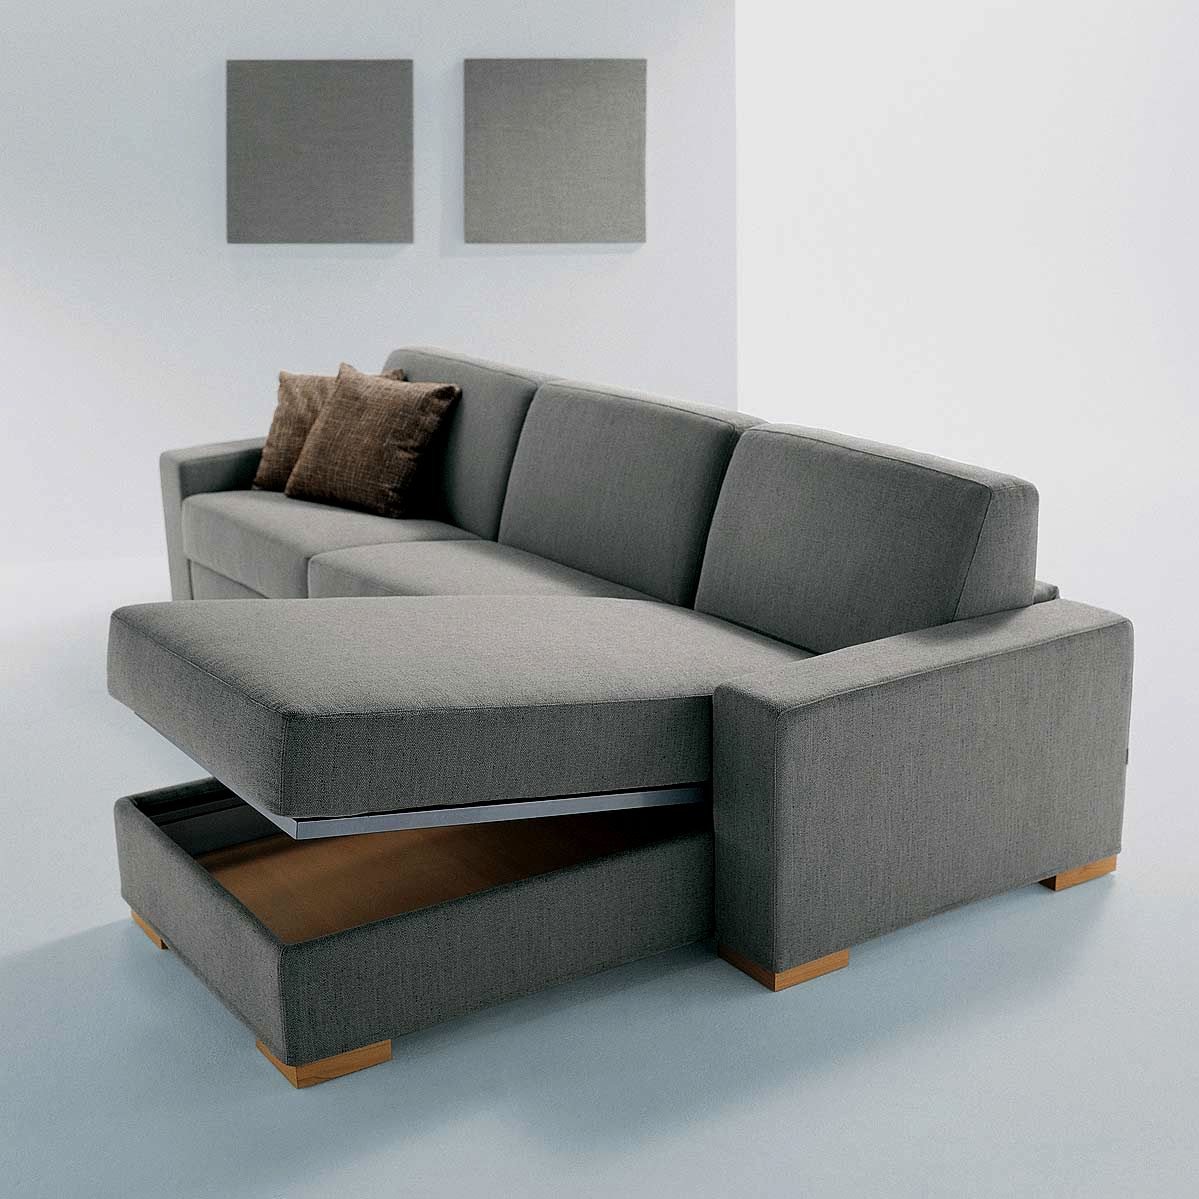 new click clack sofa design-Amazing Click Clack sofa Decoration